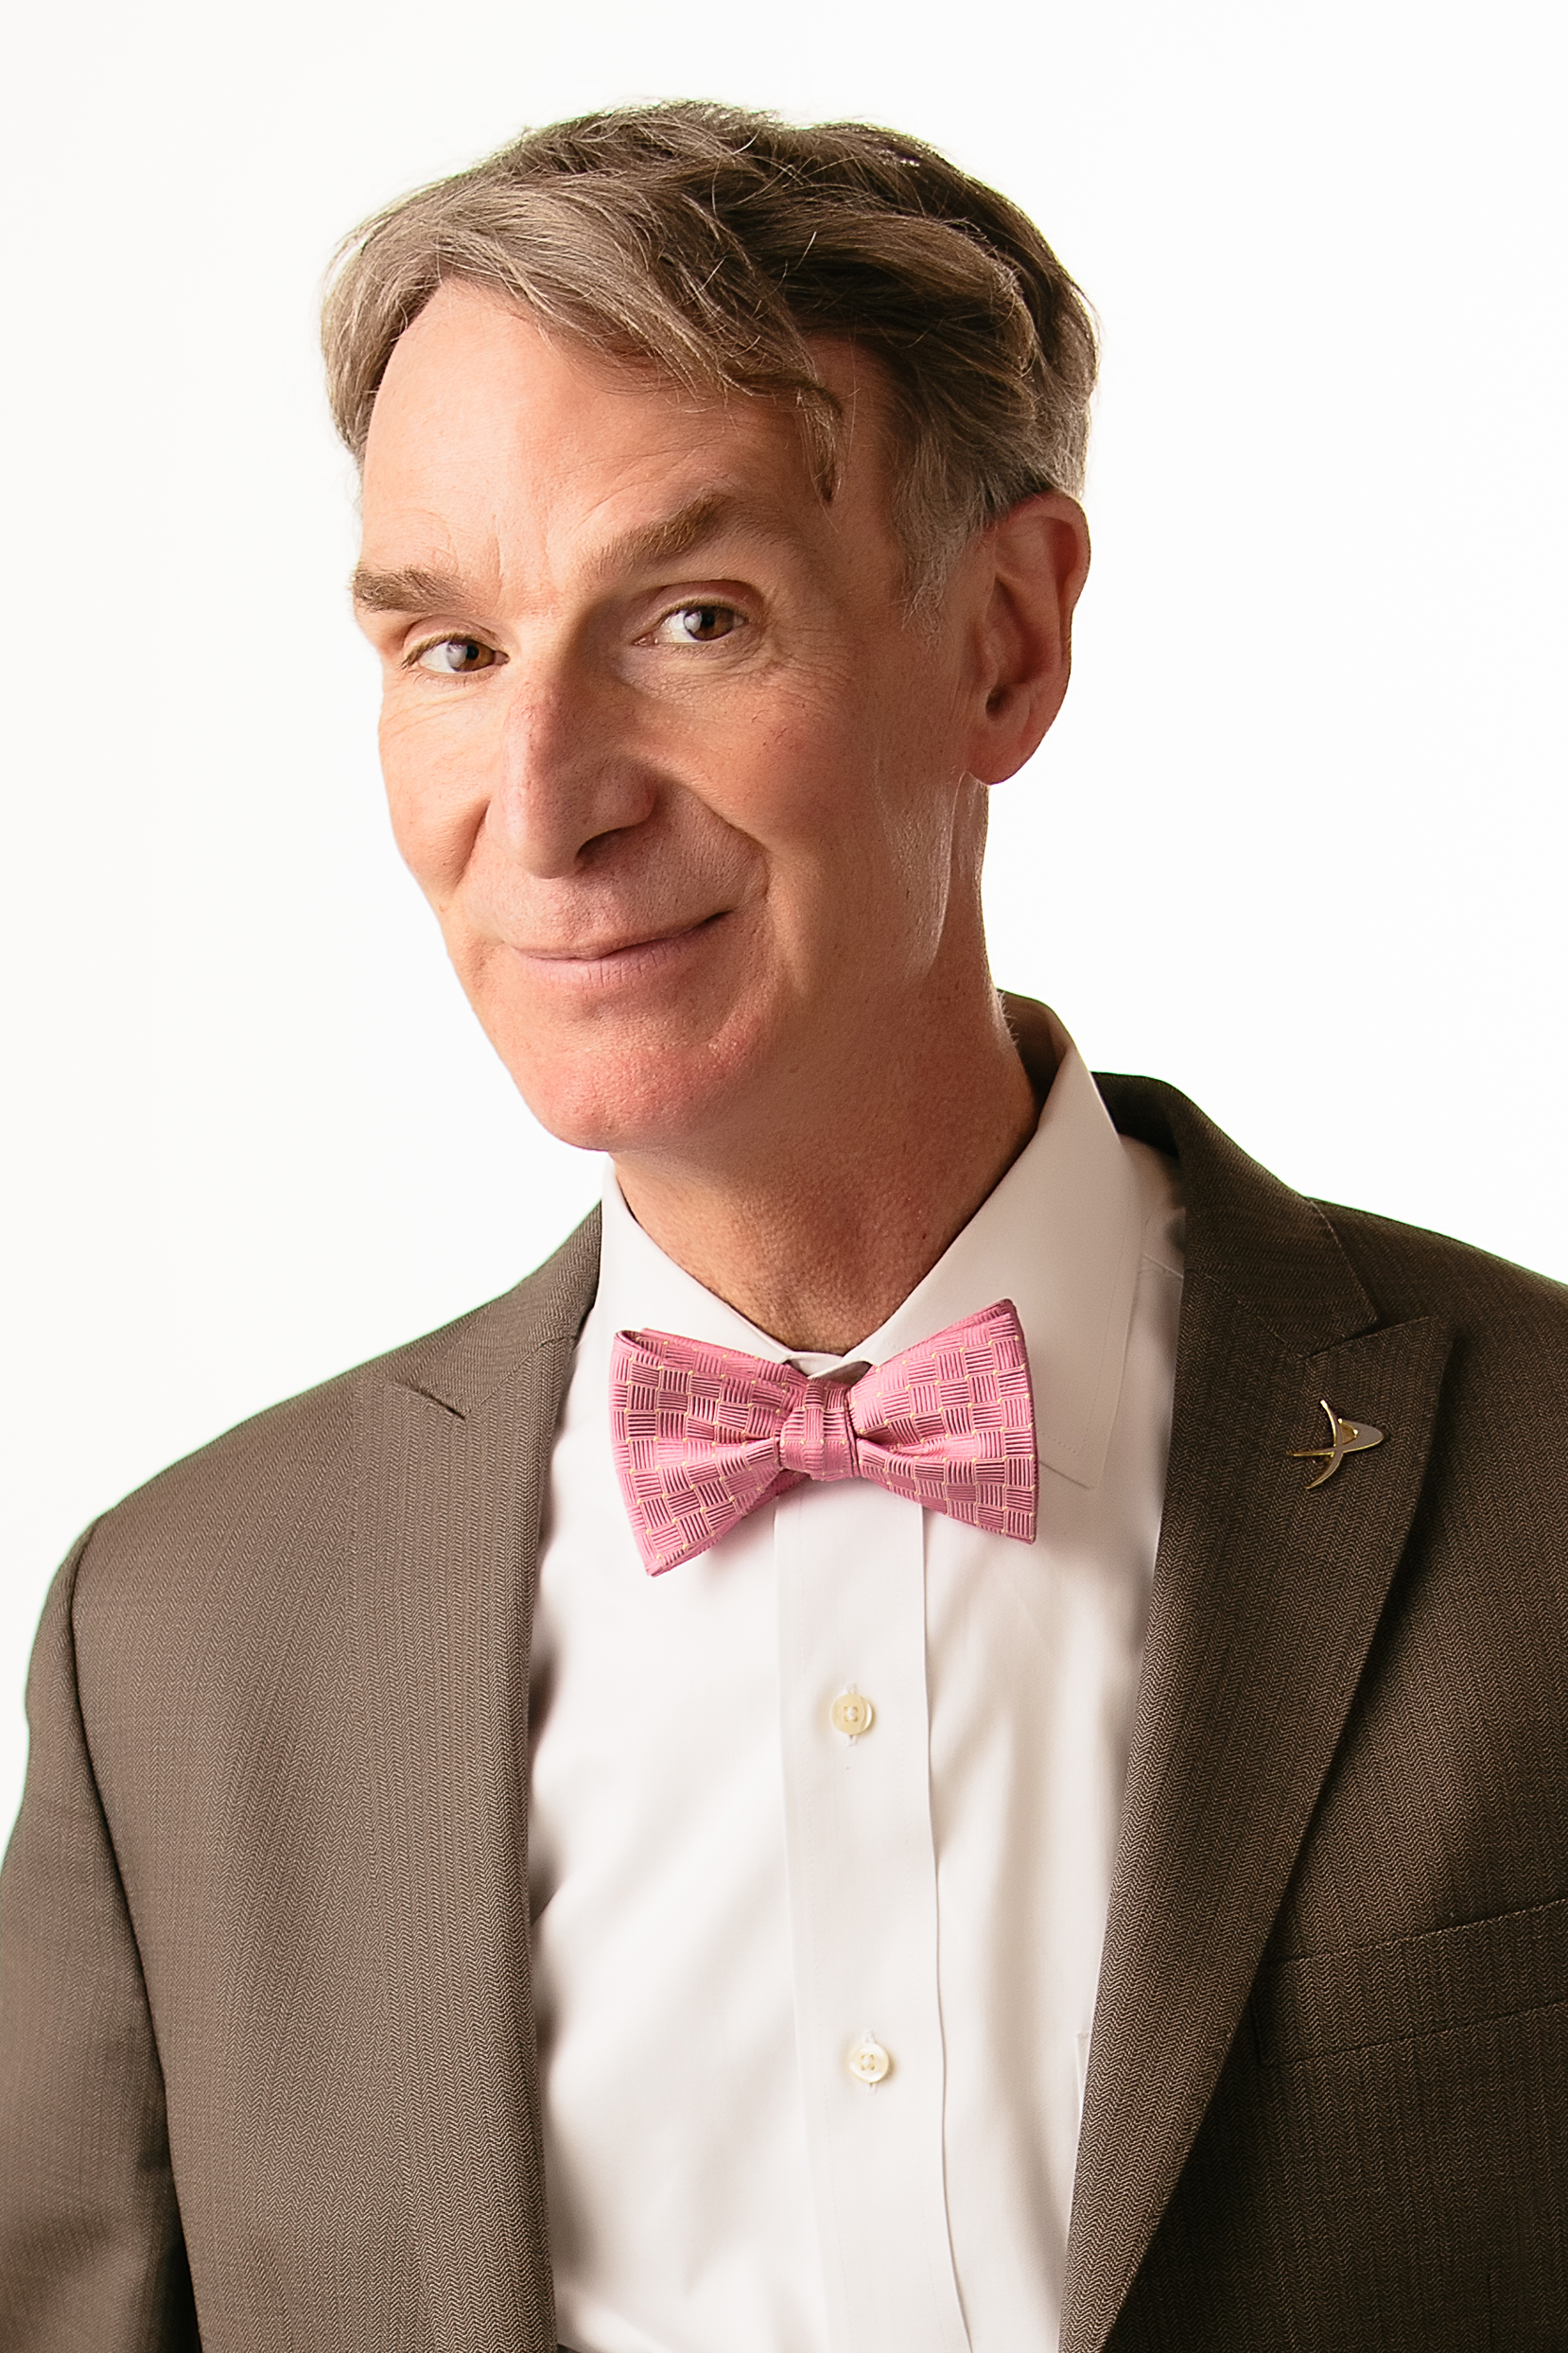 Disney can be sued by Bill Nye 'The Science Guy' judge rules